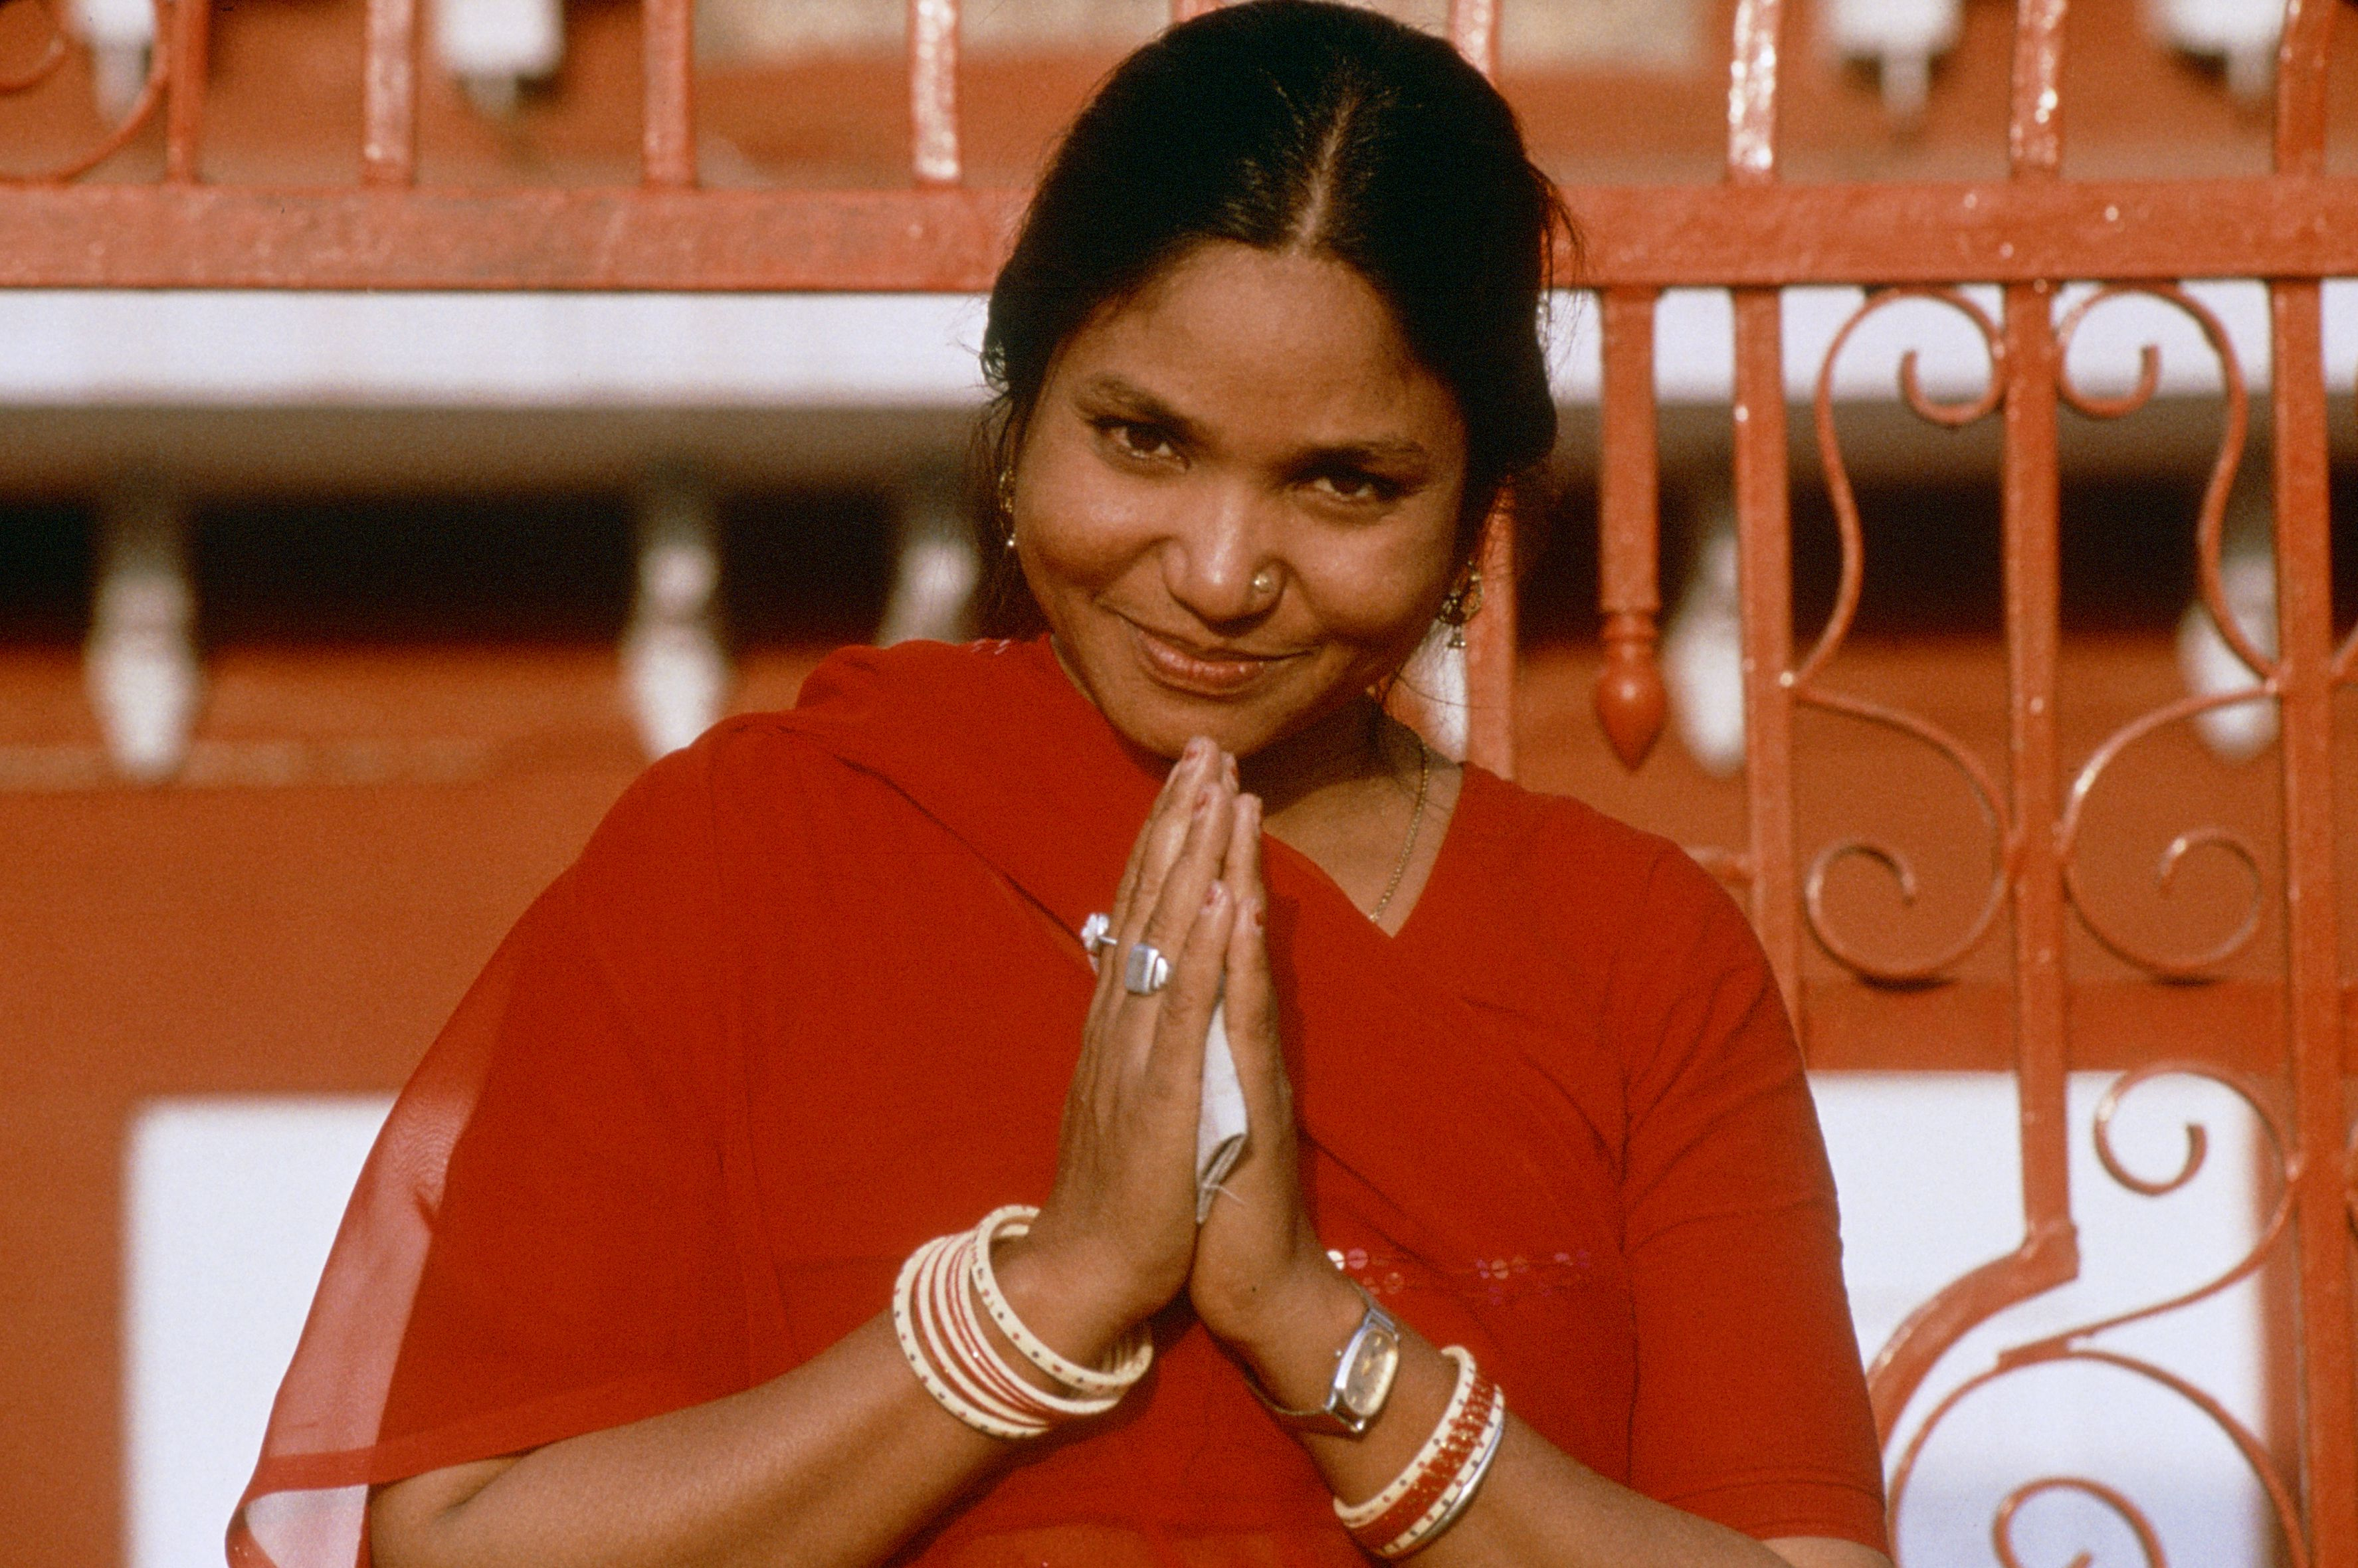 phoolan devi बैंडिट क्वीन - फूलन देवी का सच जानकार उड़ जाएँगे होश एक बार जरूर जानें, who was phoolan devi, india's original 'bandit queen' biography and history in hindi thanks for watching and please click this link for subscribe बैंडिट क्वीन.